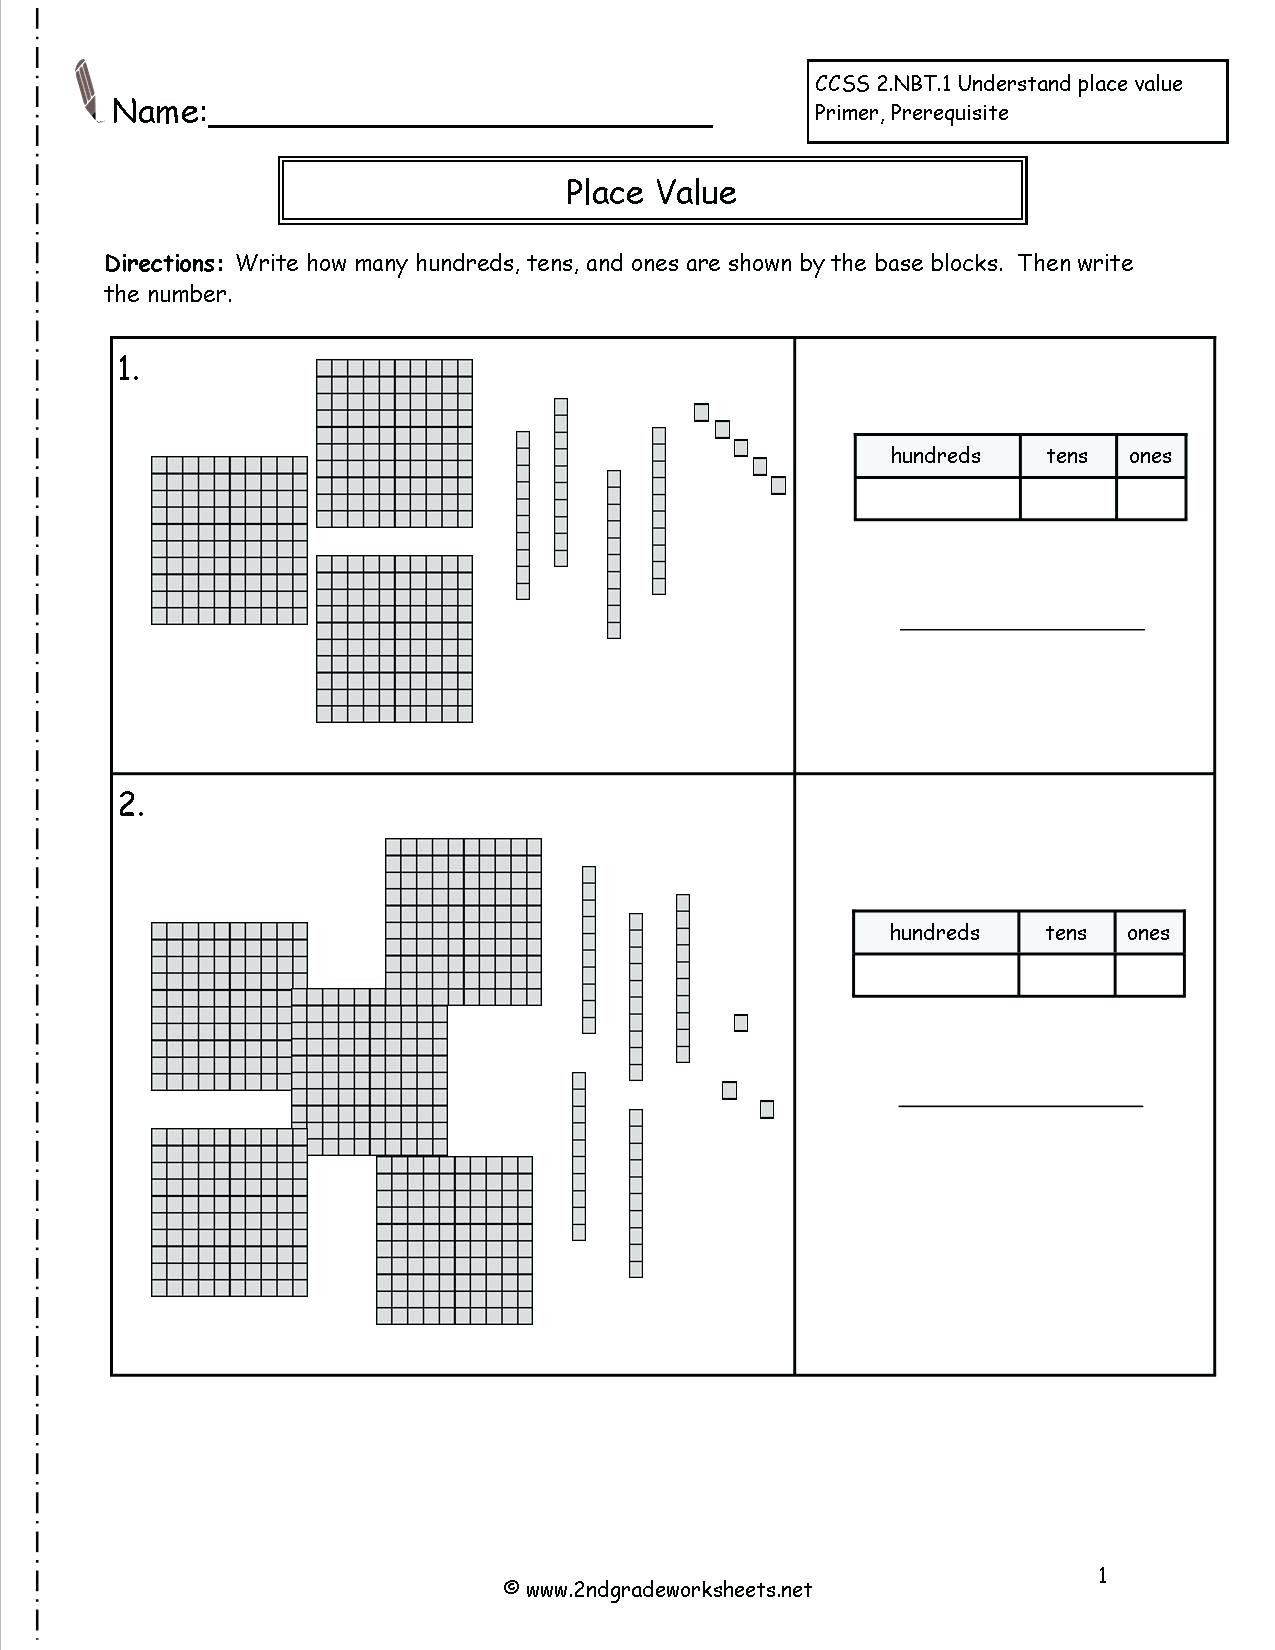 Place Value 2nd Grade Worksheet 2nd Grade Place Value Worksheets Place Value Worksheets